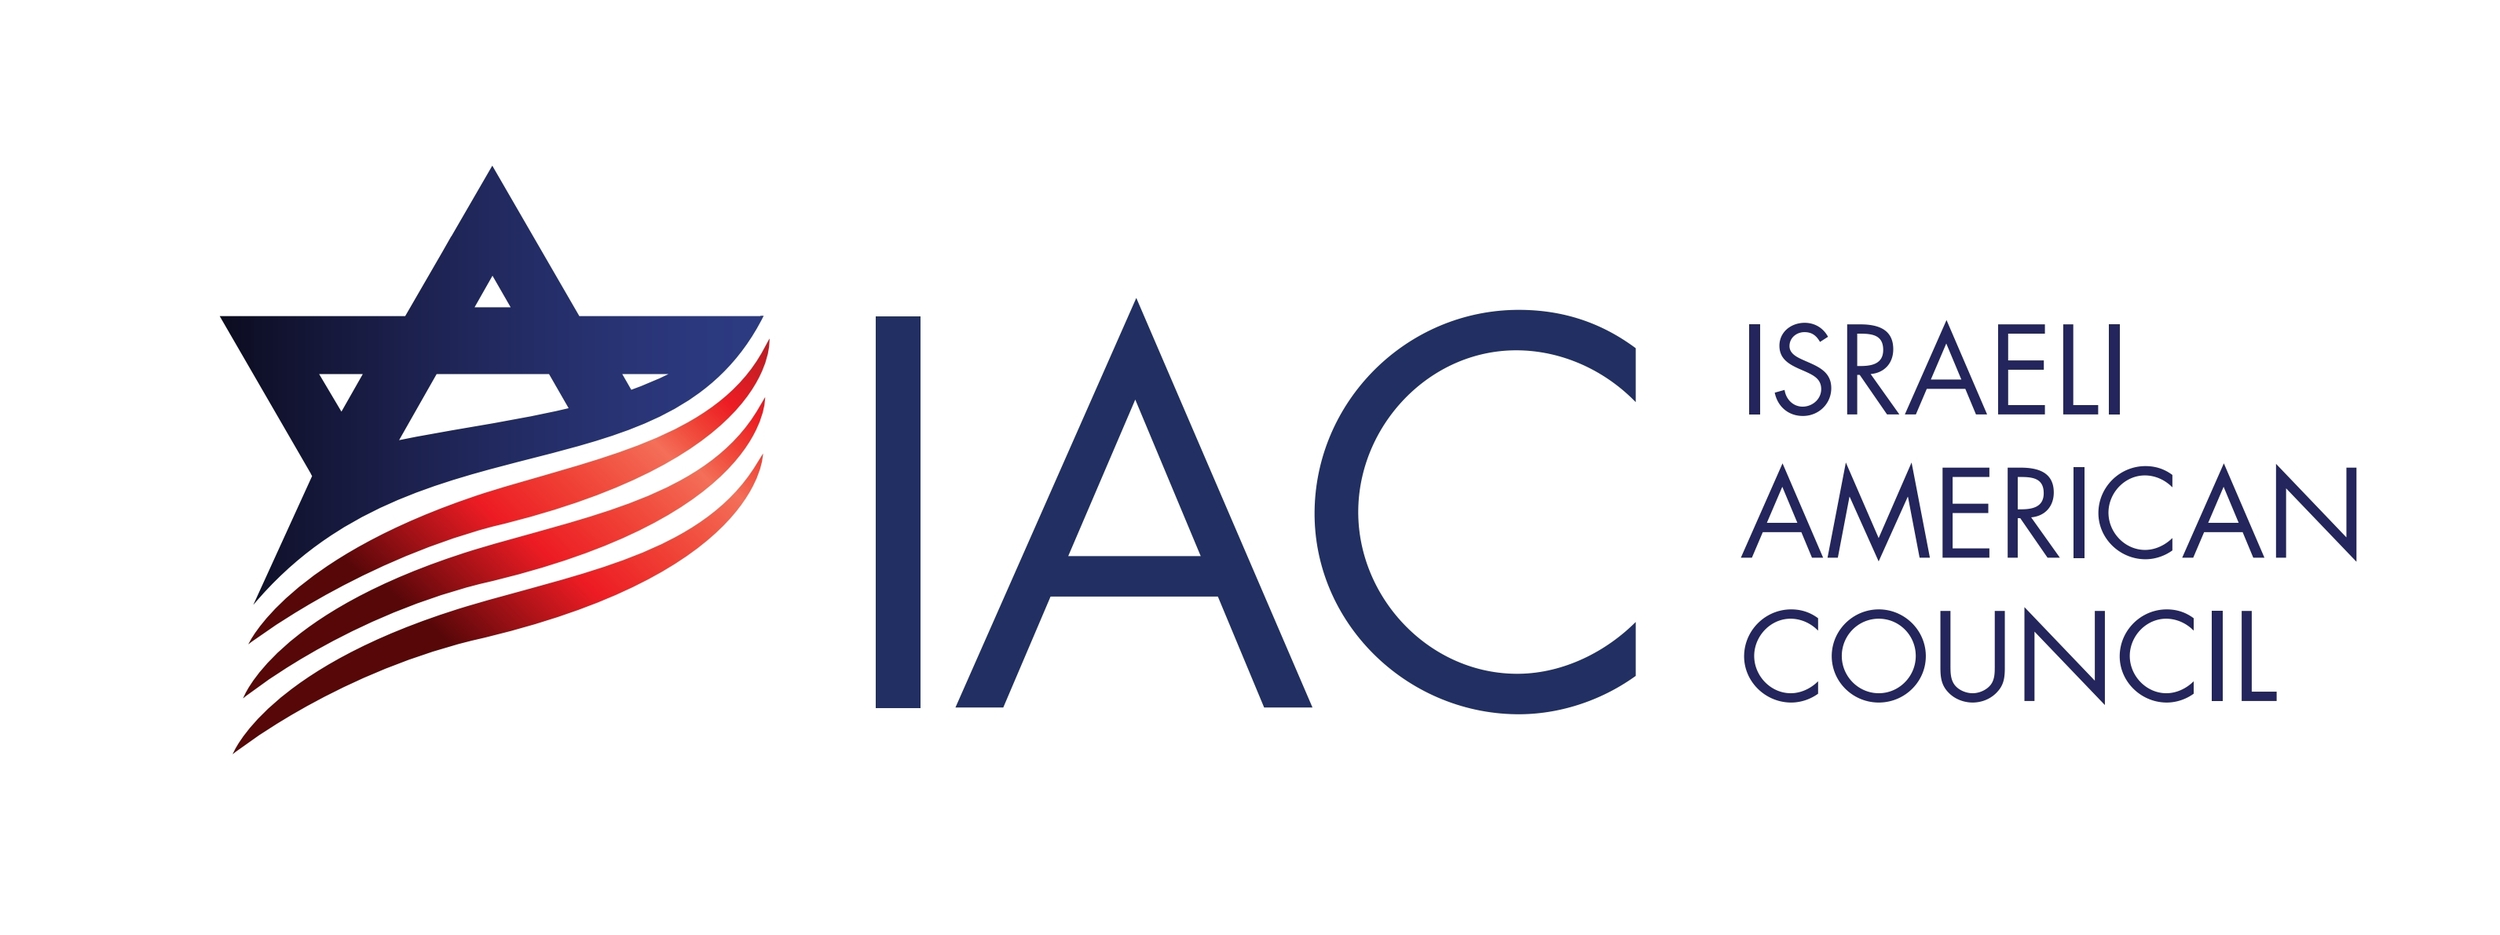 IAC_logo_Final_new_001.jpg